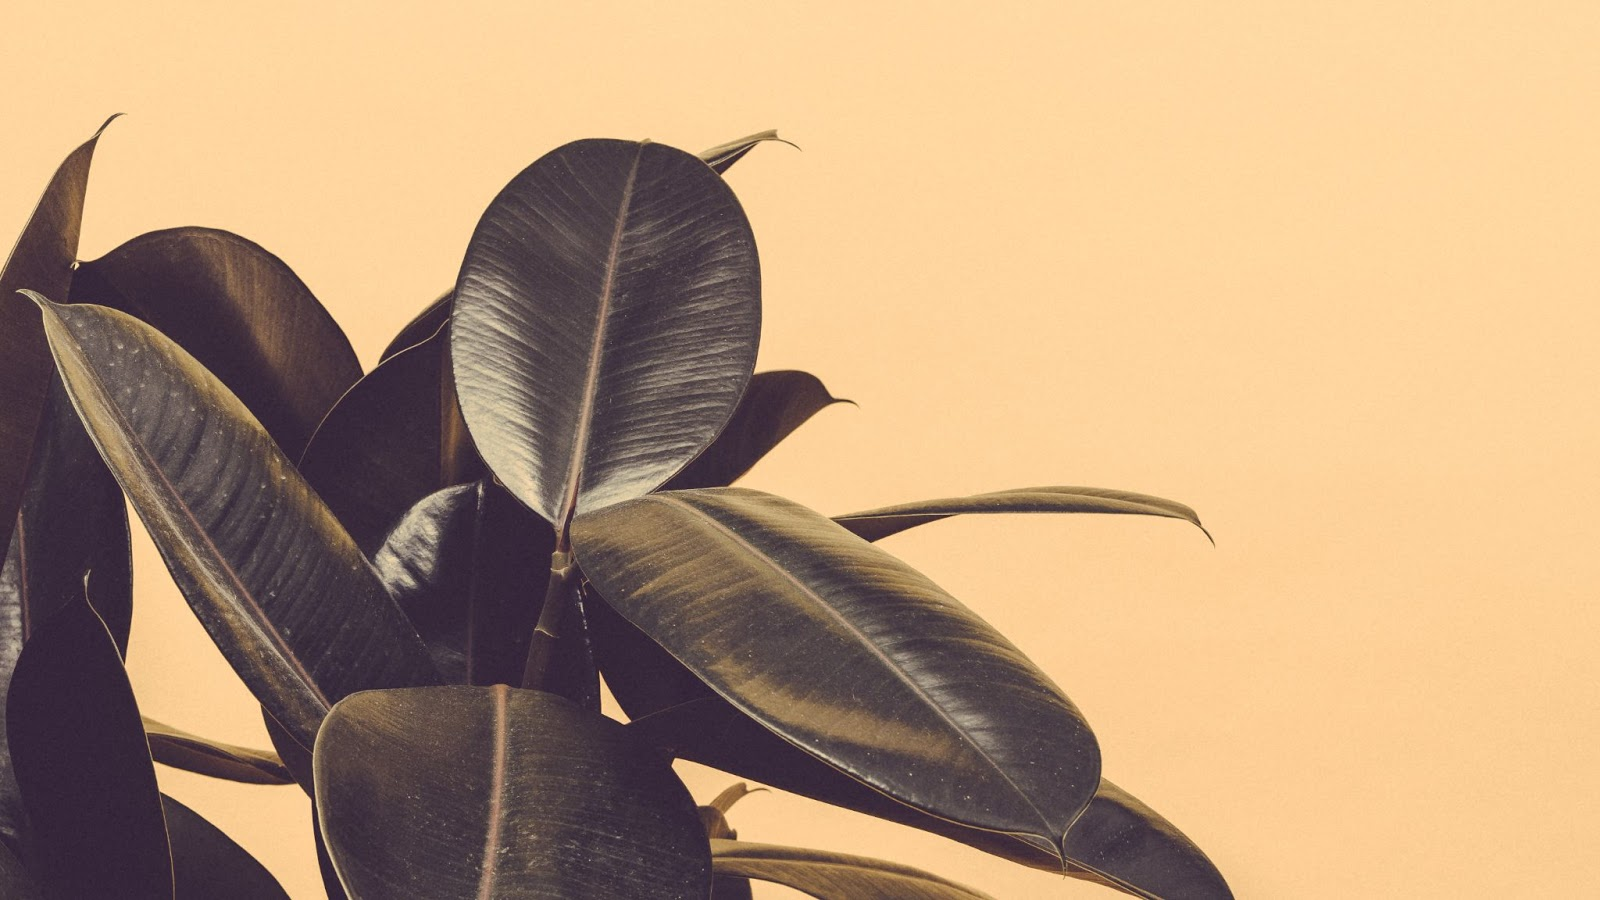 Dark waxy leaves against a yellow background.